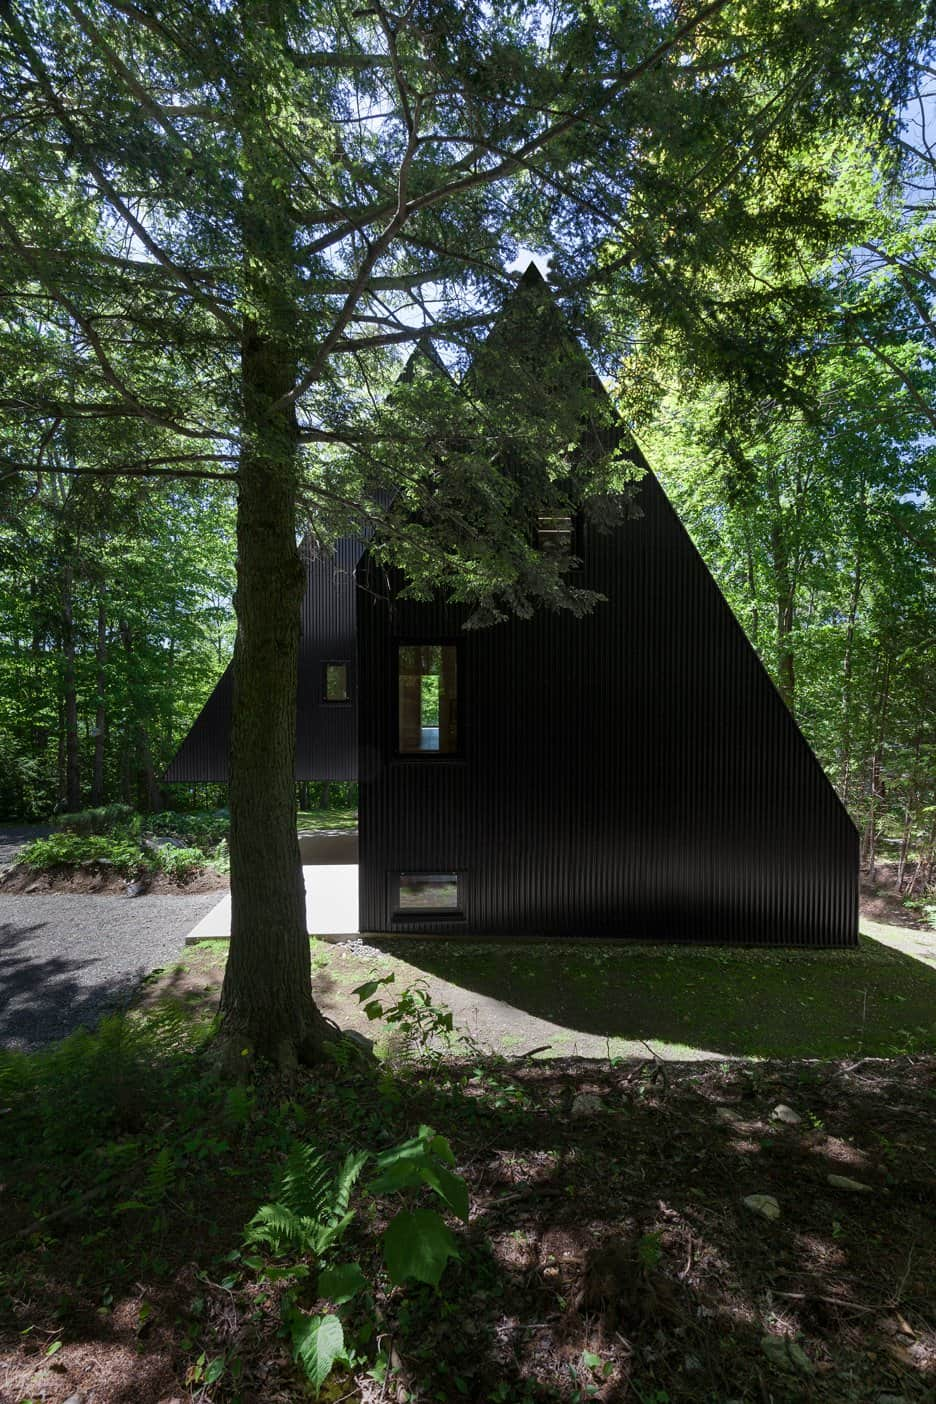 Impeccable Black Cottage in Quebec Forest by Jean Verville (2)